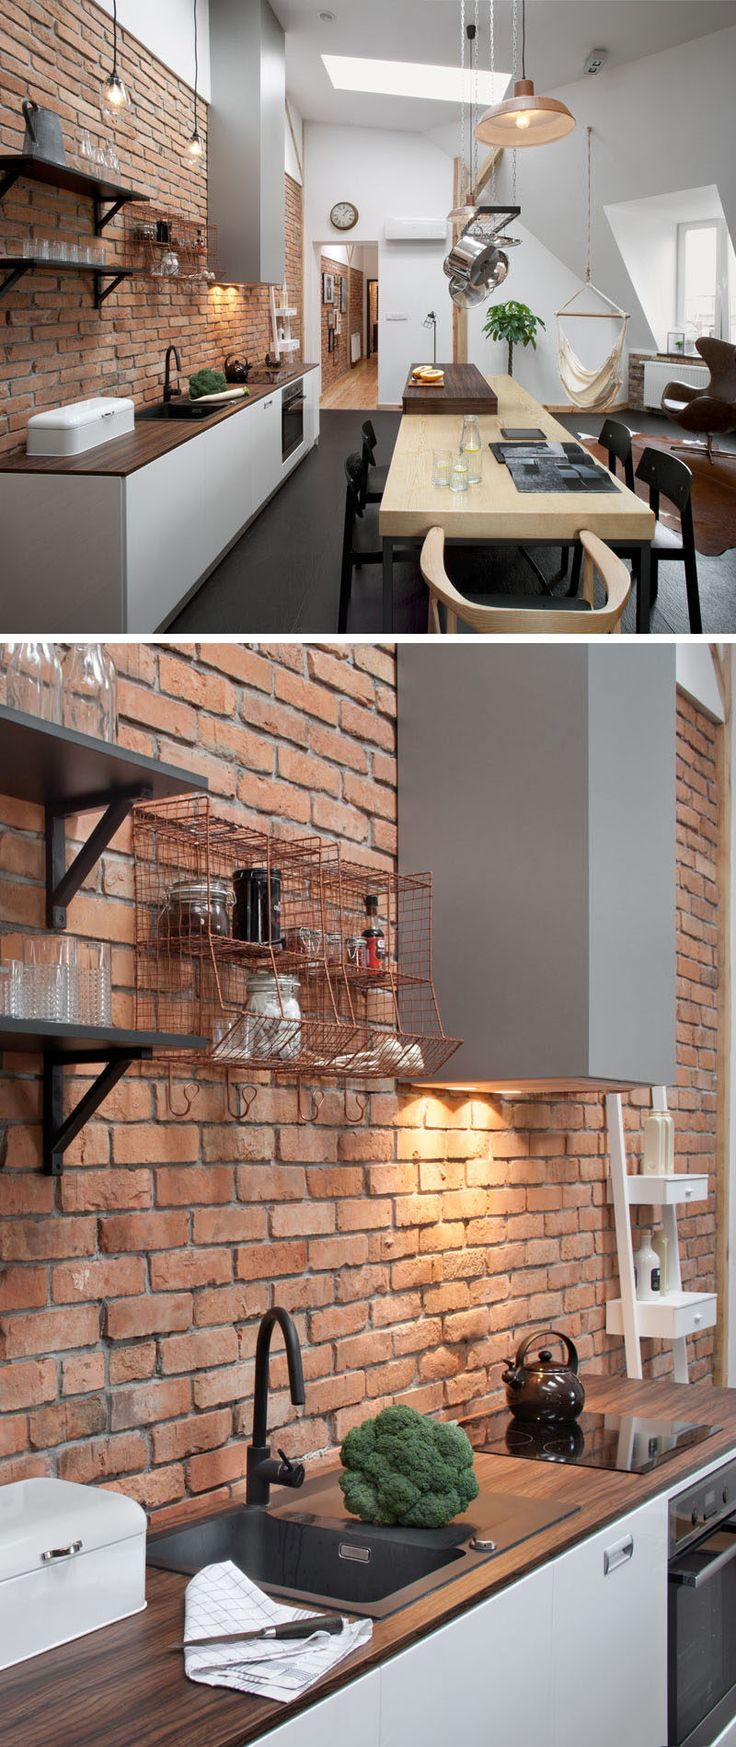 Throughout the apartment there are bright white walls, touches of brick and wood,